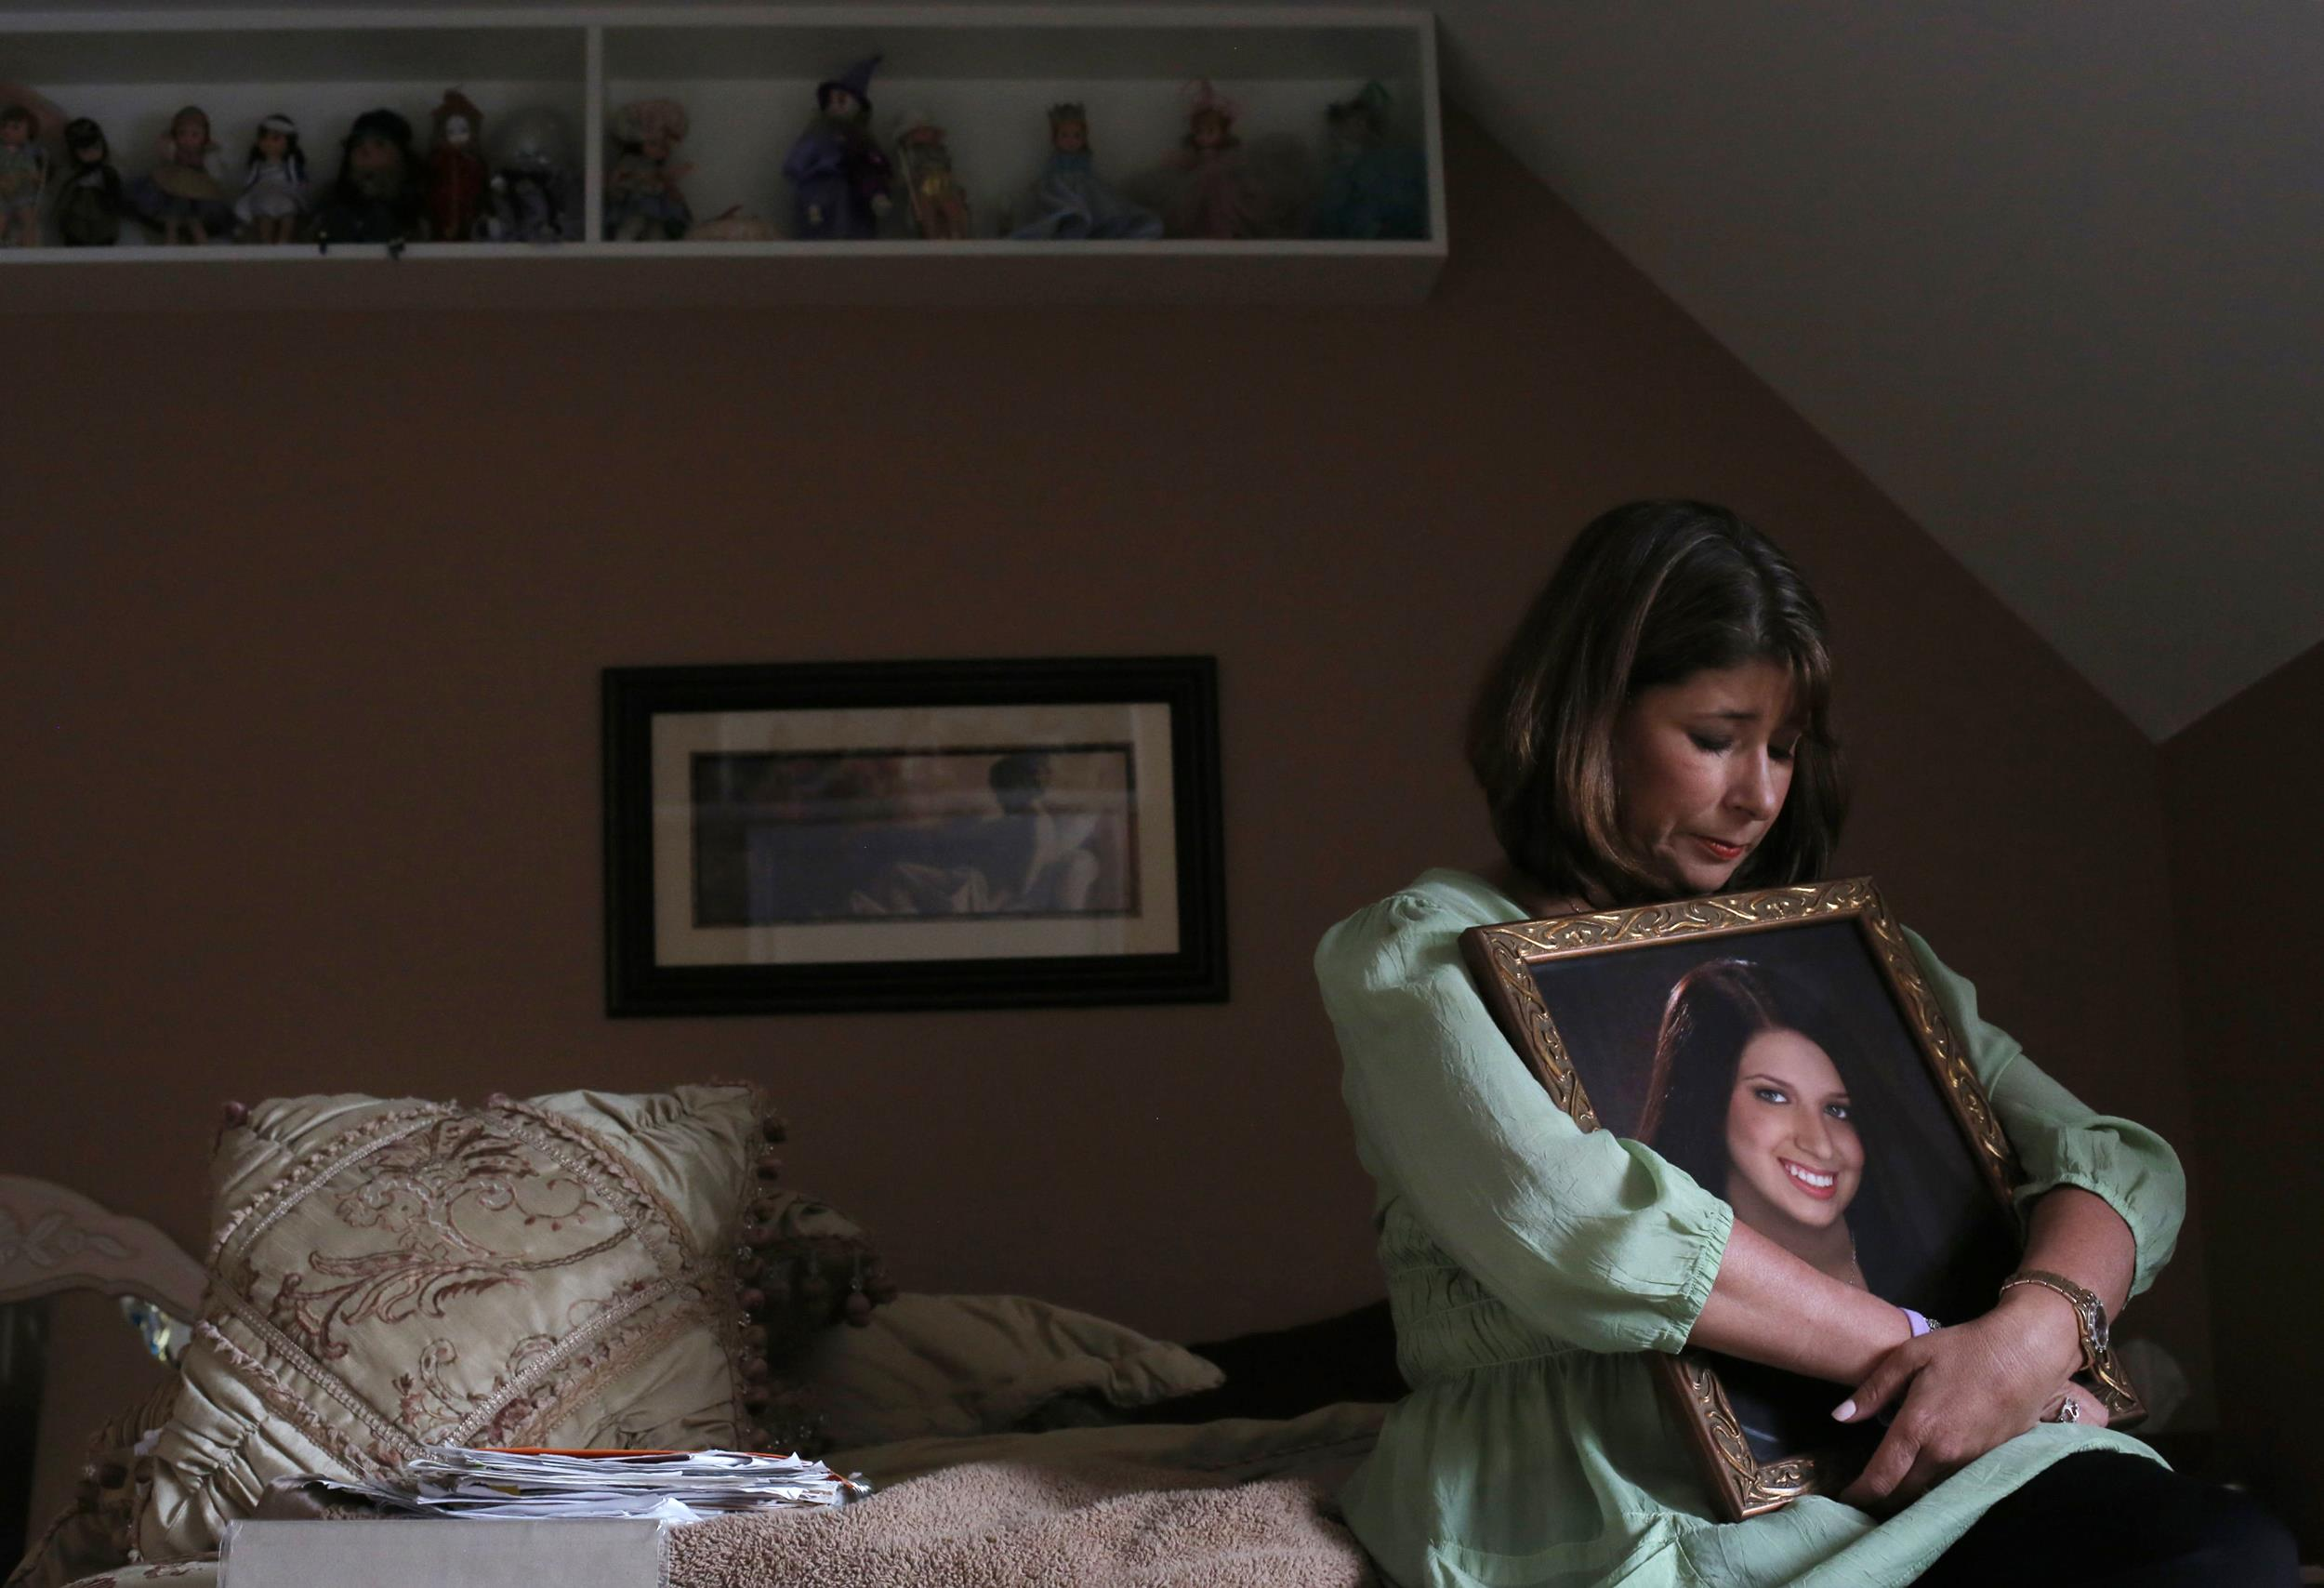 Image: Alicia Stillman holds a portrait of her 19-year-old daughter, Emily, who died in February 2013 from meningitis B.